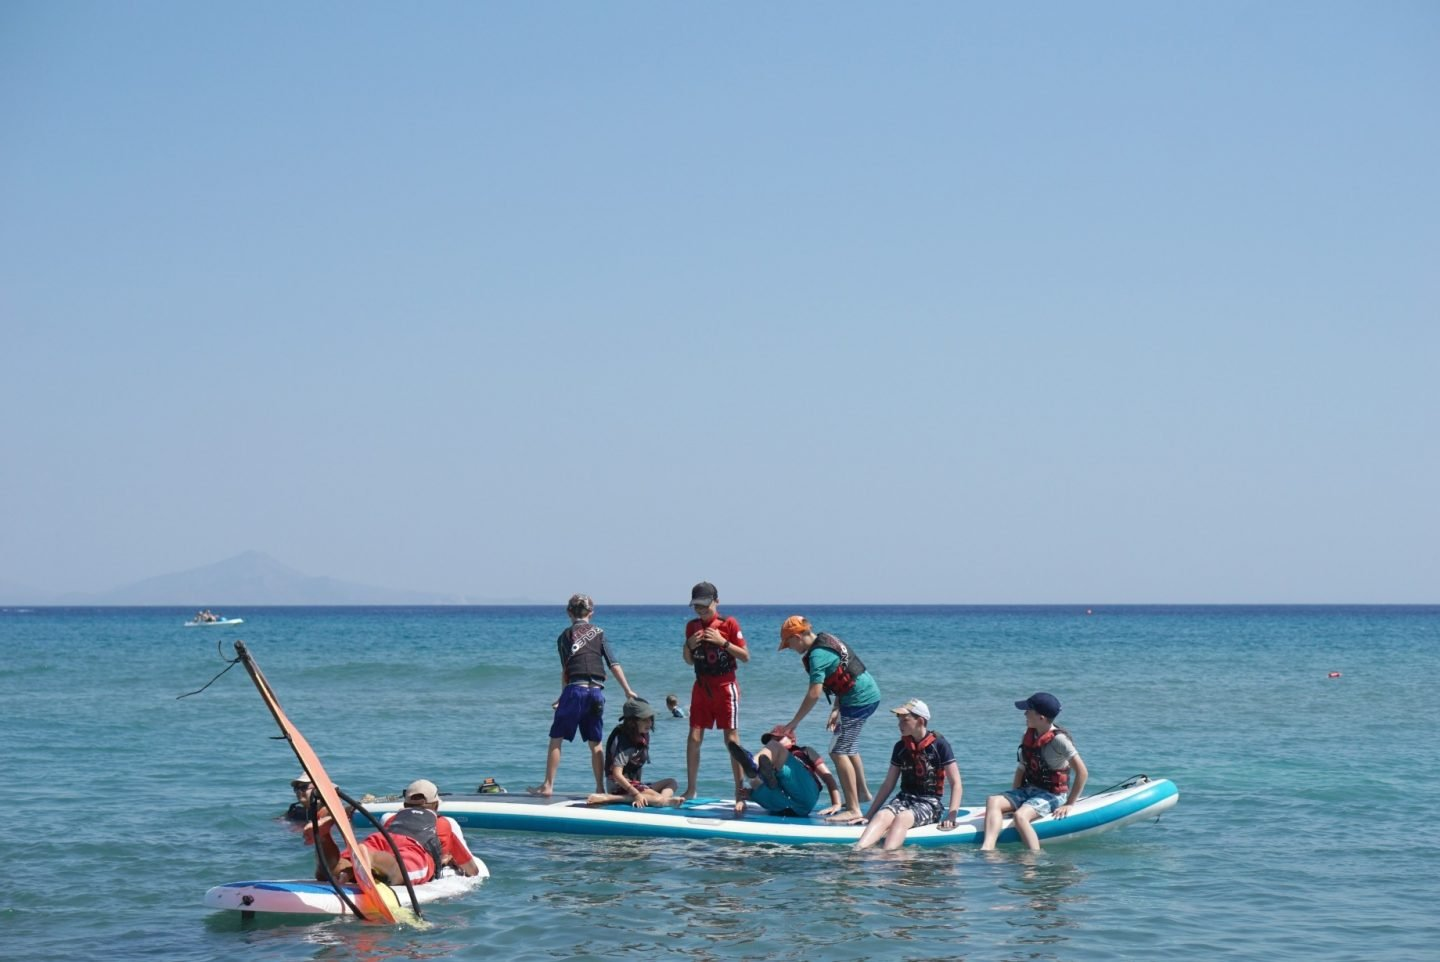 Learning to paddle board and windsurf in Greece for teens